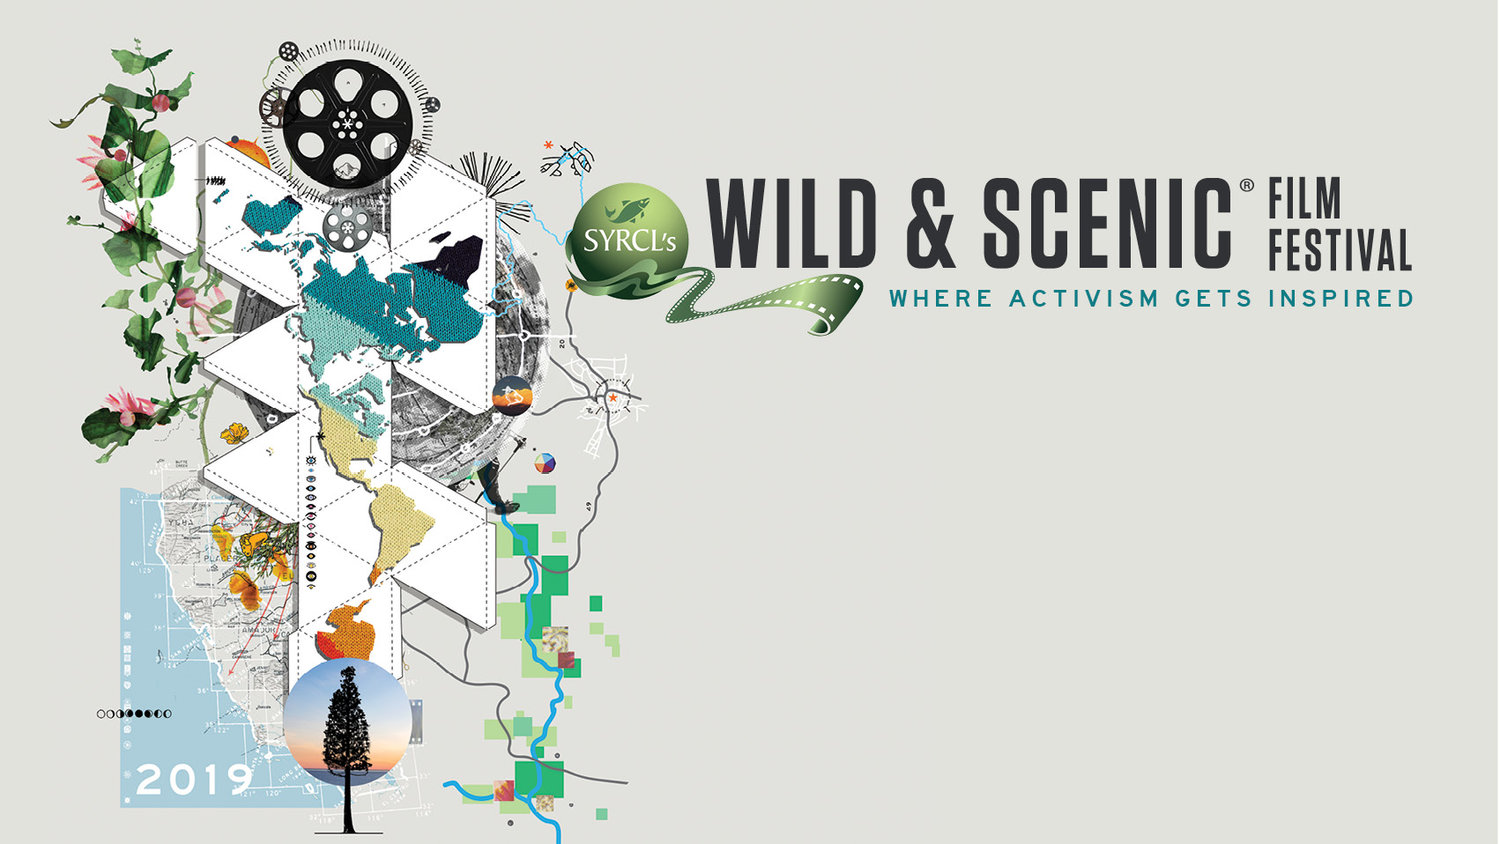 wild and scenic film festival where activism gets inspired logo